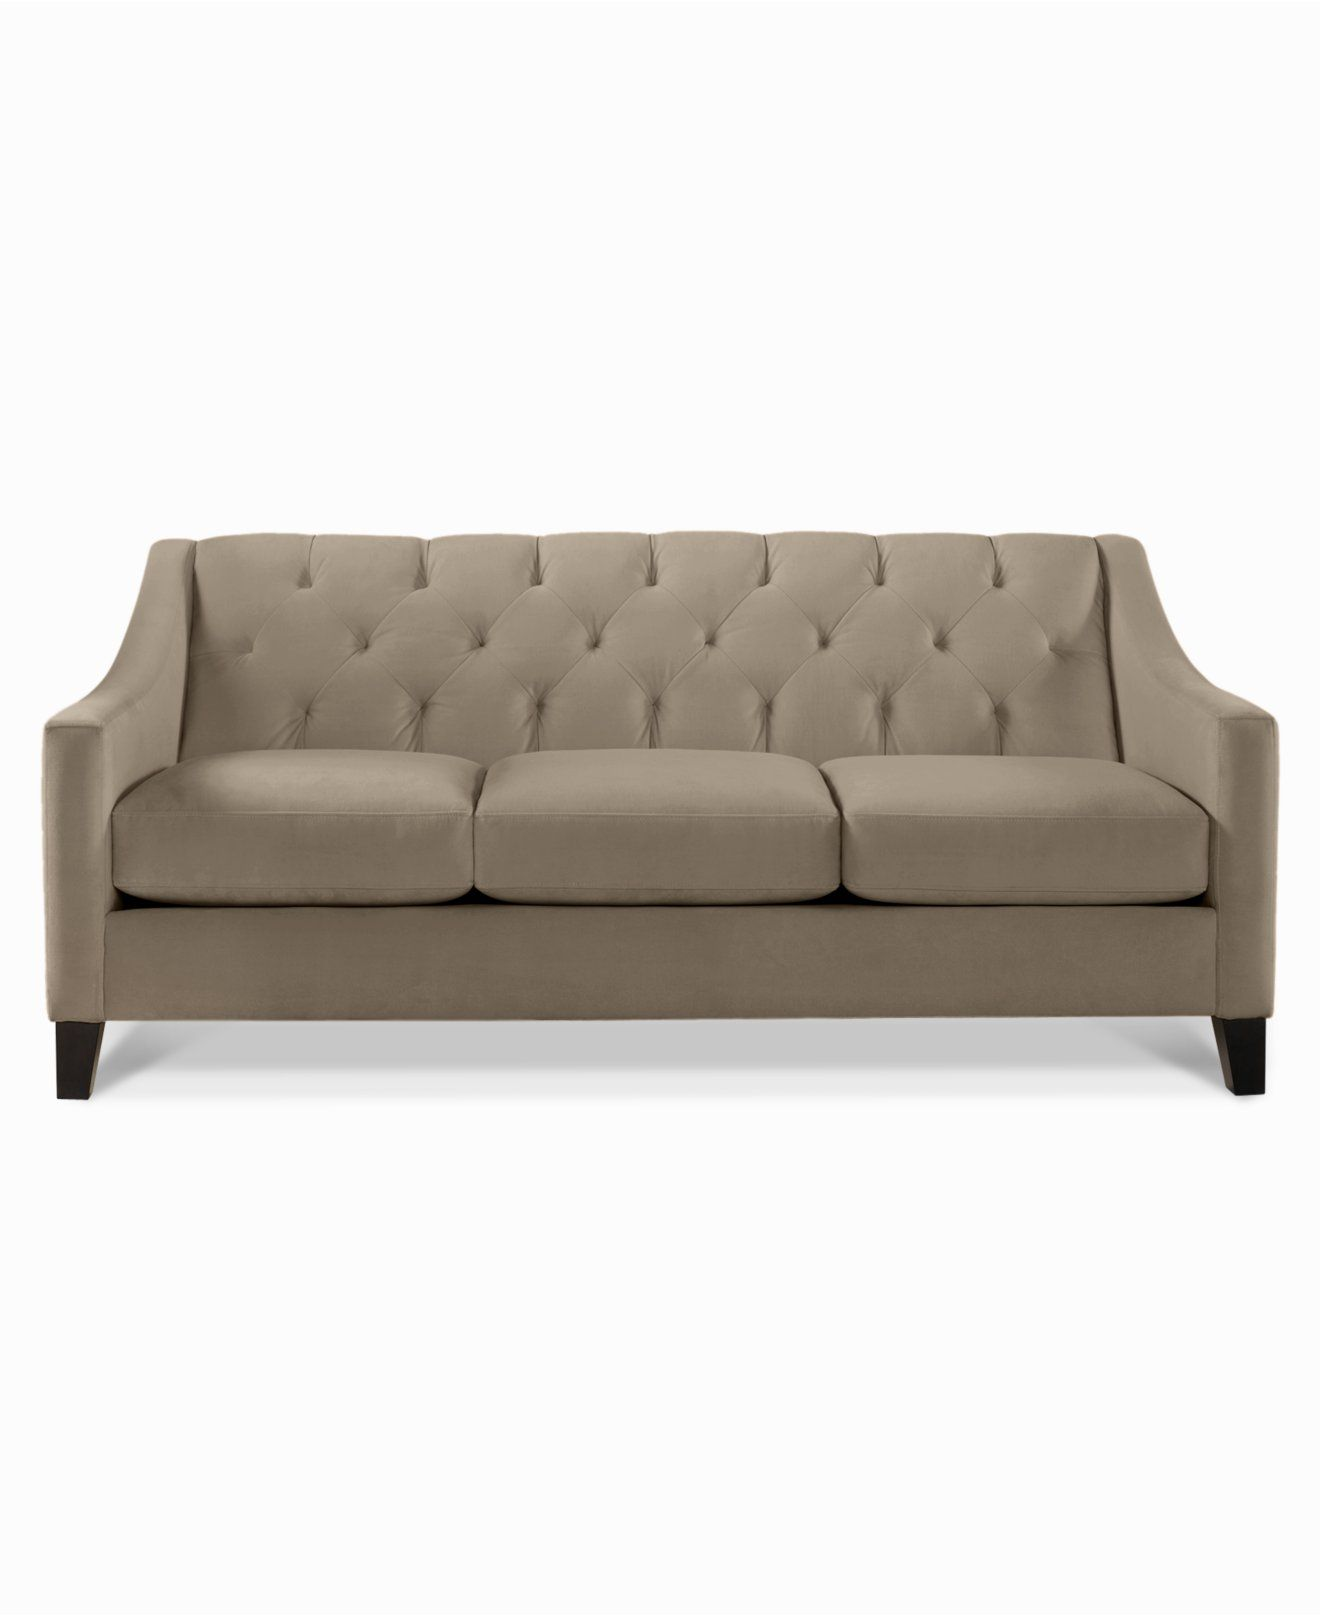 Chloe Velvet Tufted Sofa   Couches U0026 Sofas   Furniture   Macyu0027s // Granite  $599 Awesome Design